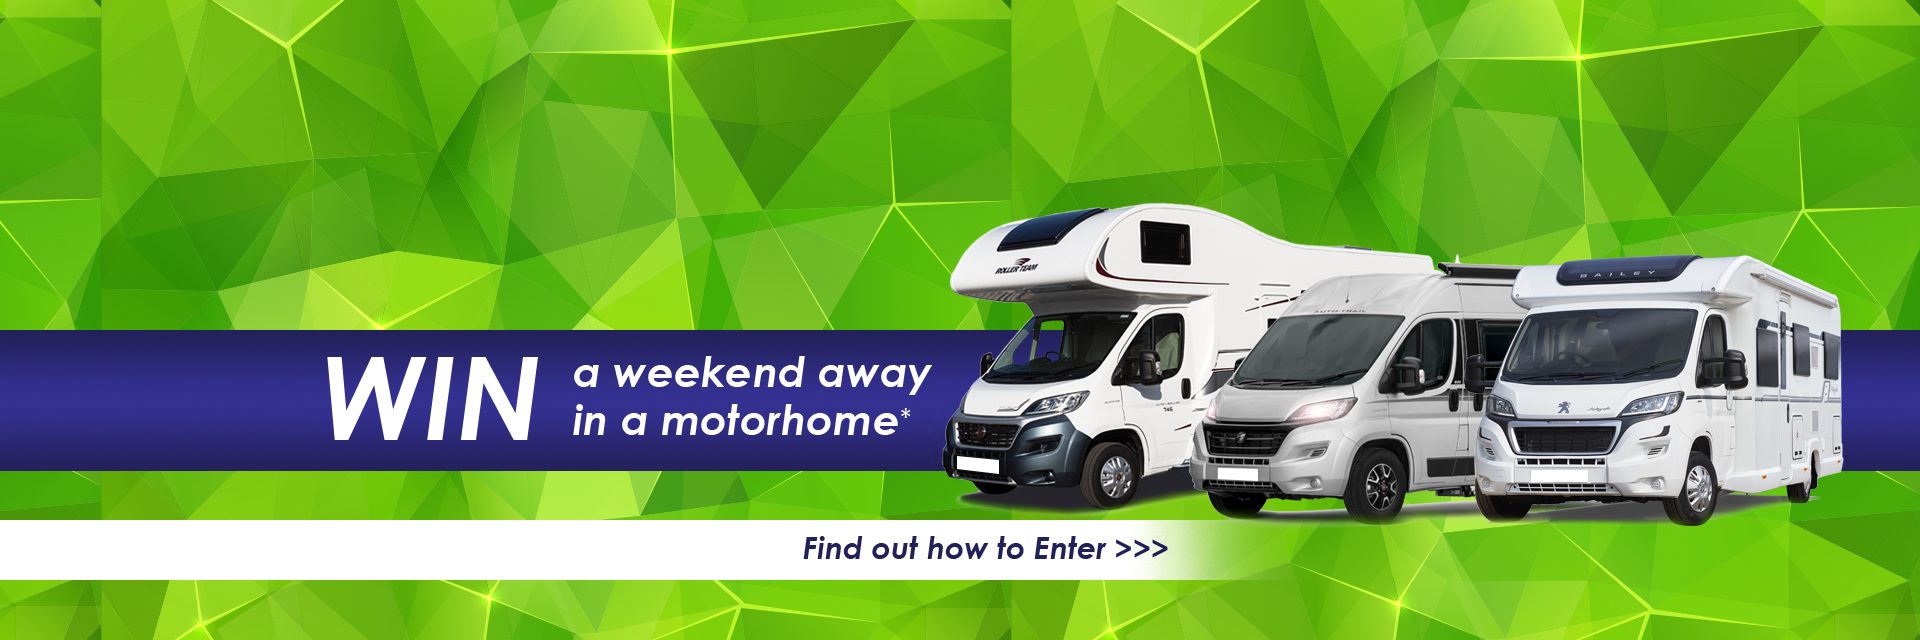 Image for Win a motorhome holiday